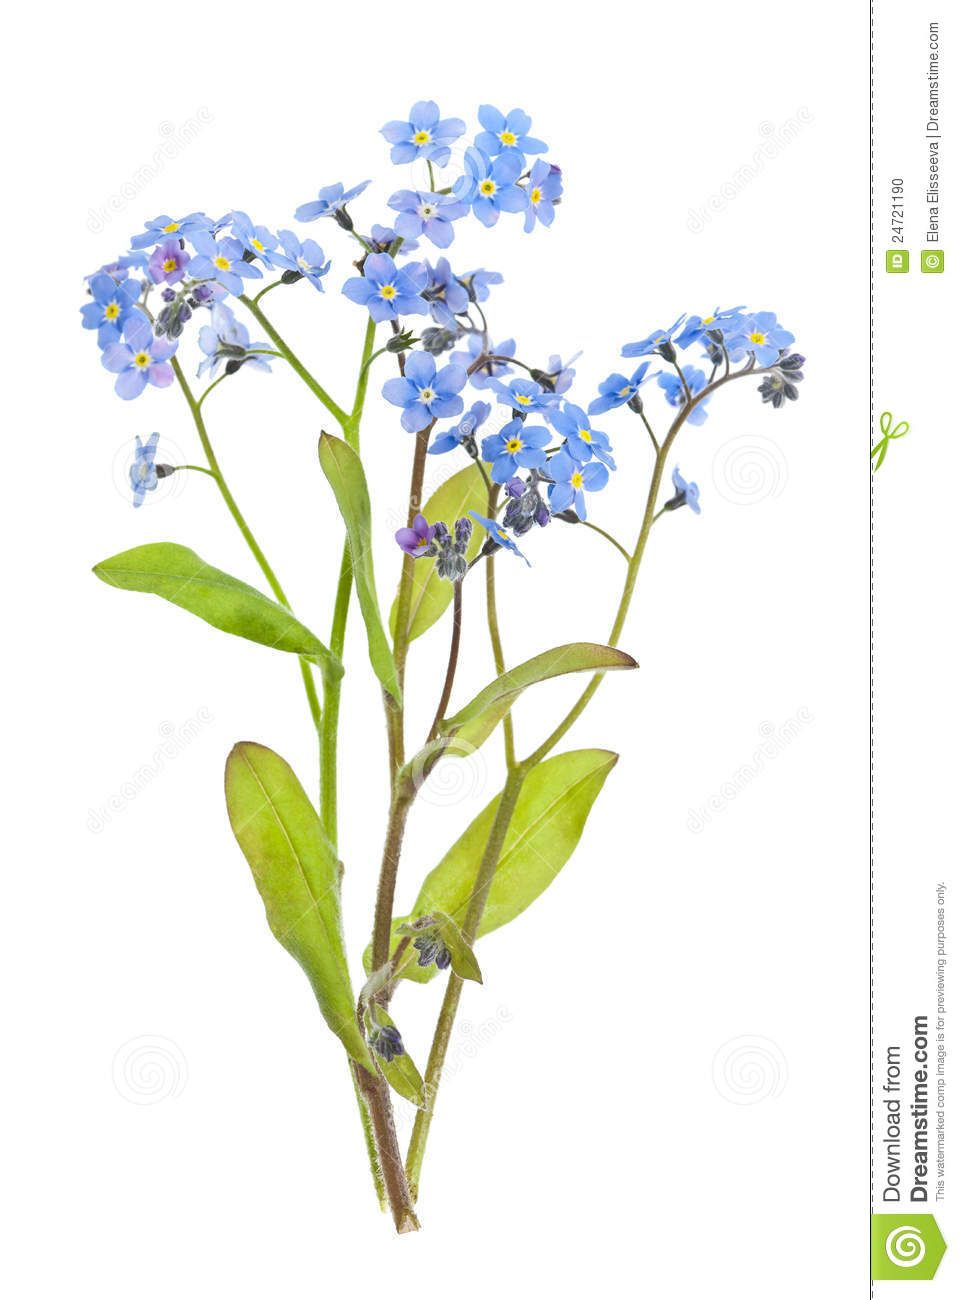 Forget Me Not Flowers On White Download From Over 26 Million High